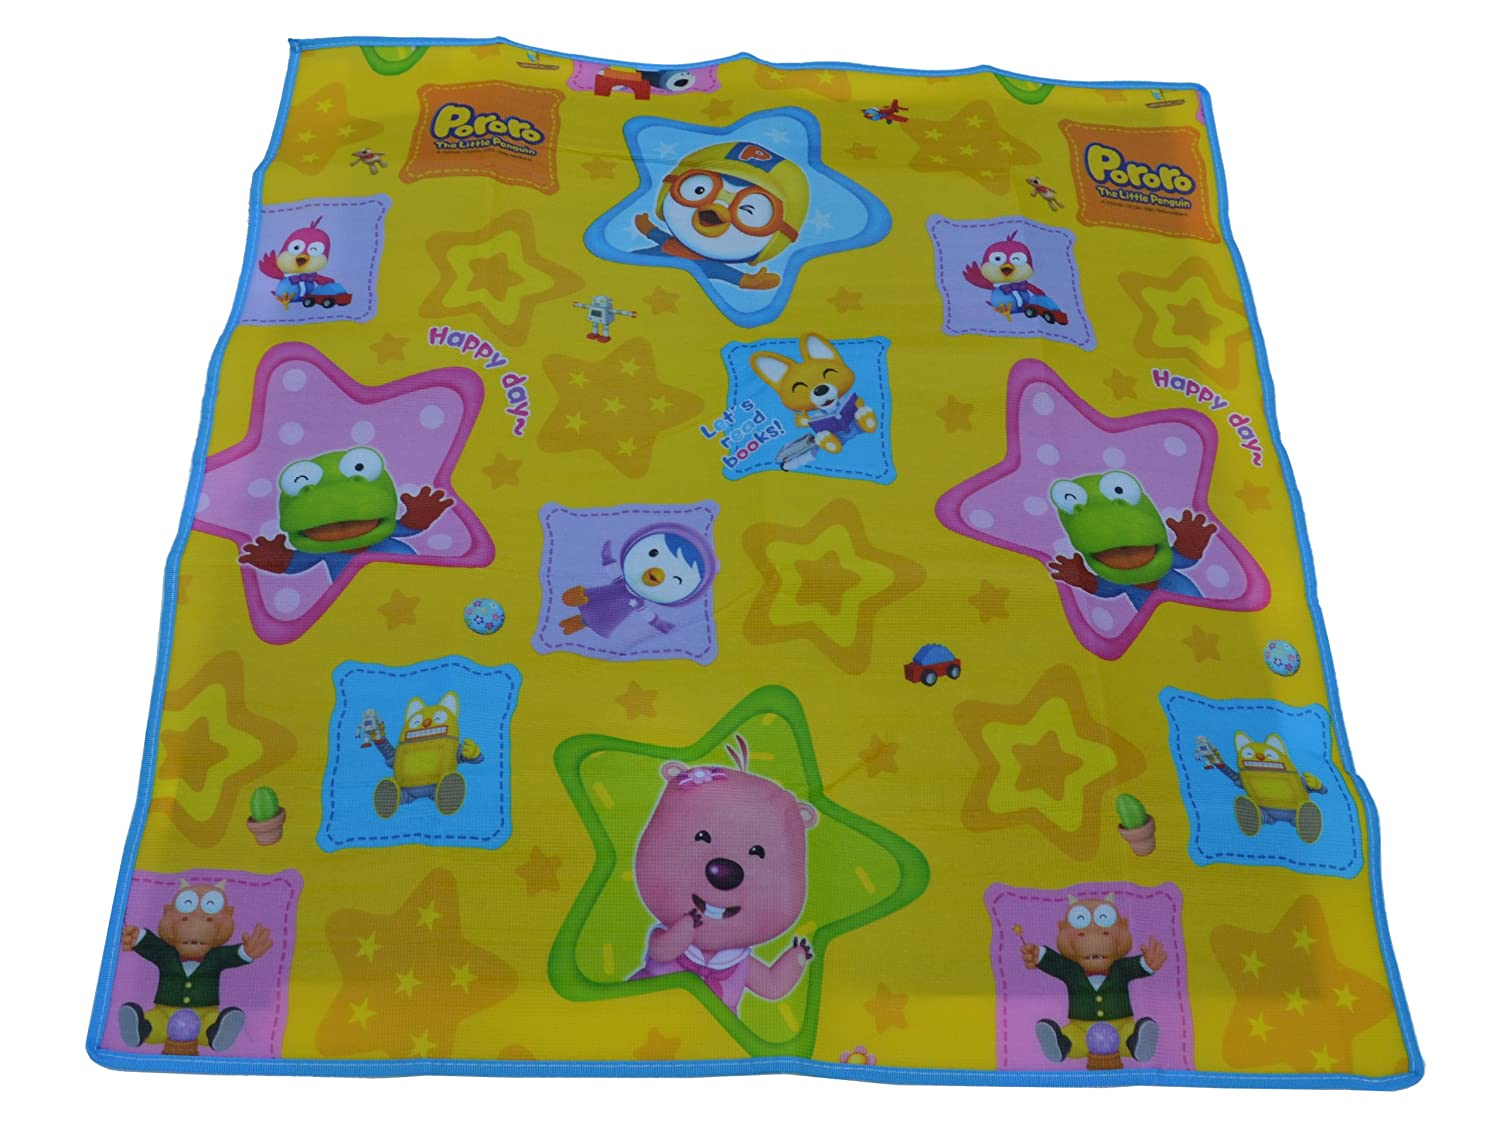 Pororo Pocket Mat, Beach Mat, Picnic Mat, Camping Mat - All Purpose Mat. Use 1 to 2 People, Small Size 39 x 35, Use the Waterproof Mat to Relax in the Park, Garden, Concert, Picnic, Hiking etc. Folds to a compact 10 x 9 by KJGLS B00K62LSU8